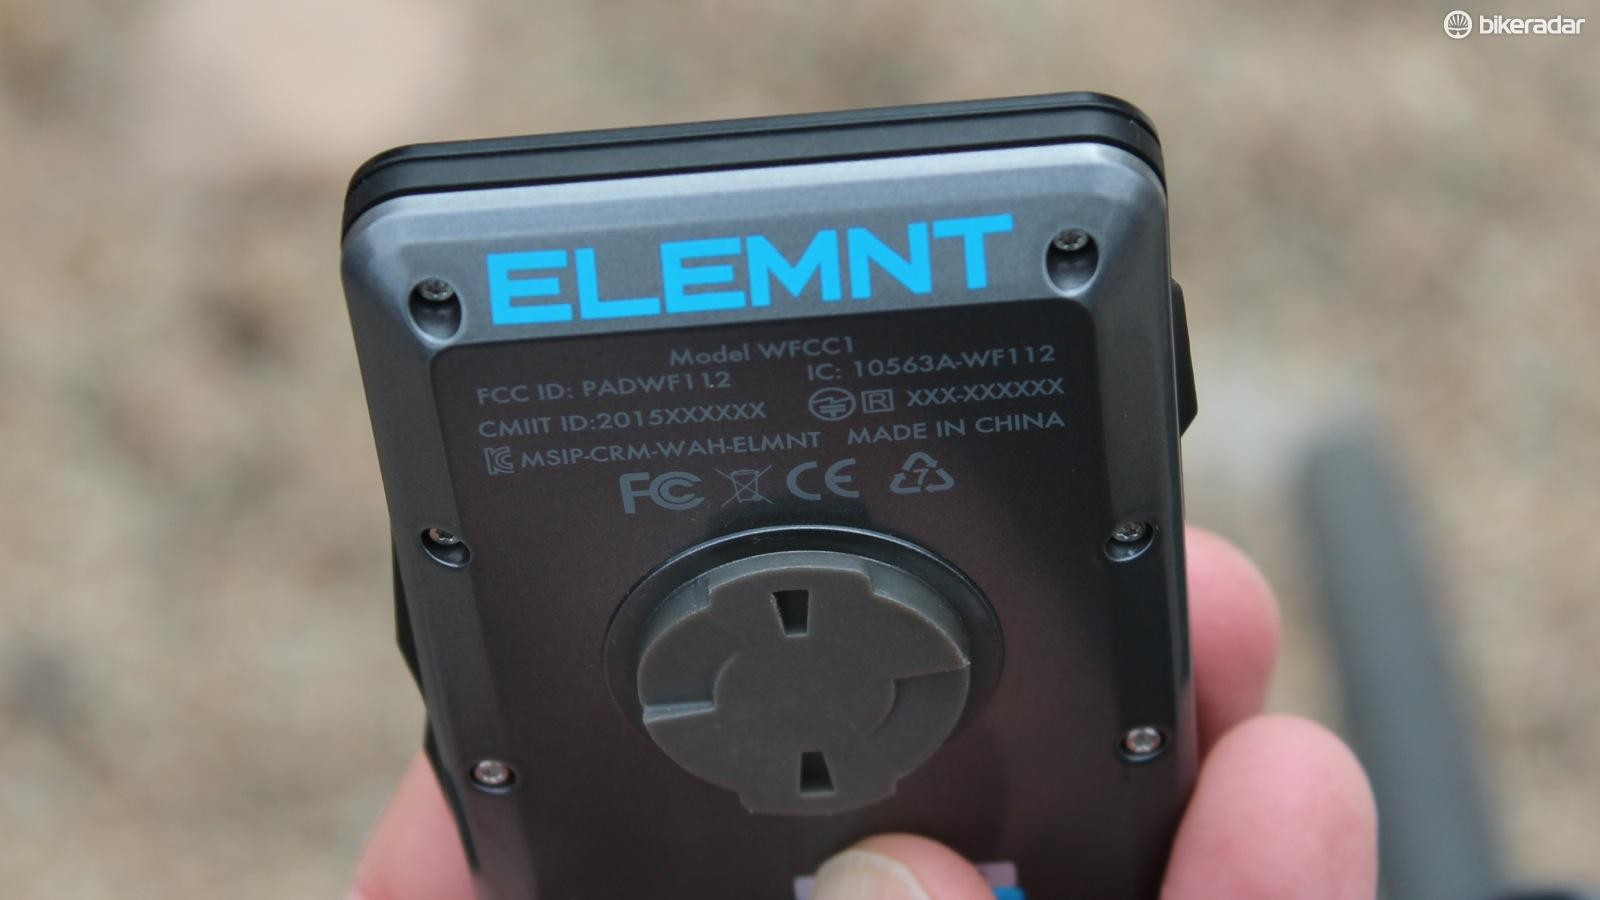 The Wahoo Elemnt won't dethrone Garmin from GPS computer supremacy, but it should put the tech giant on notice